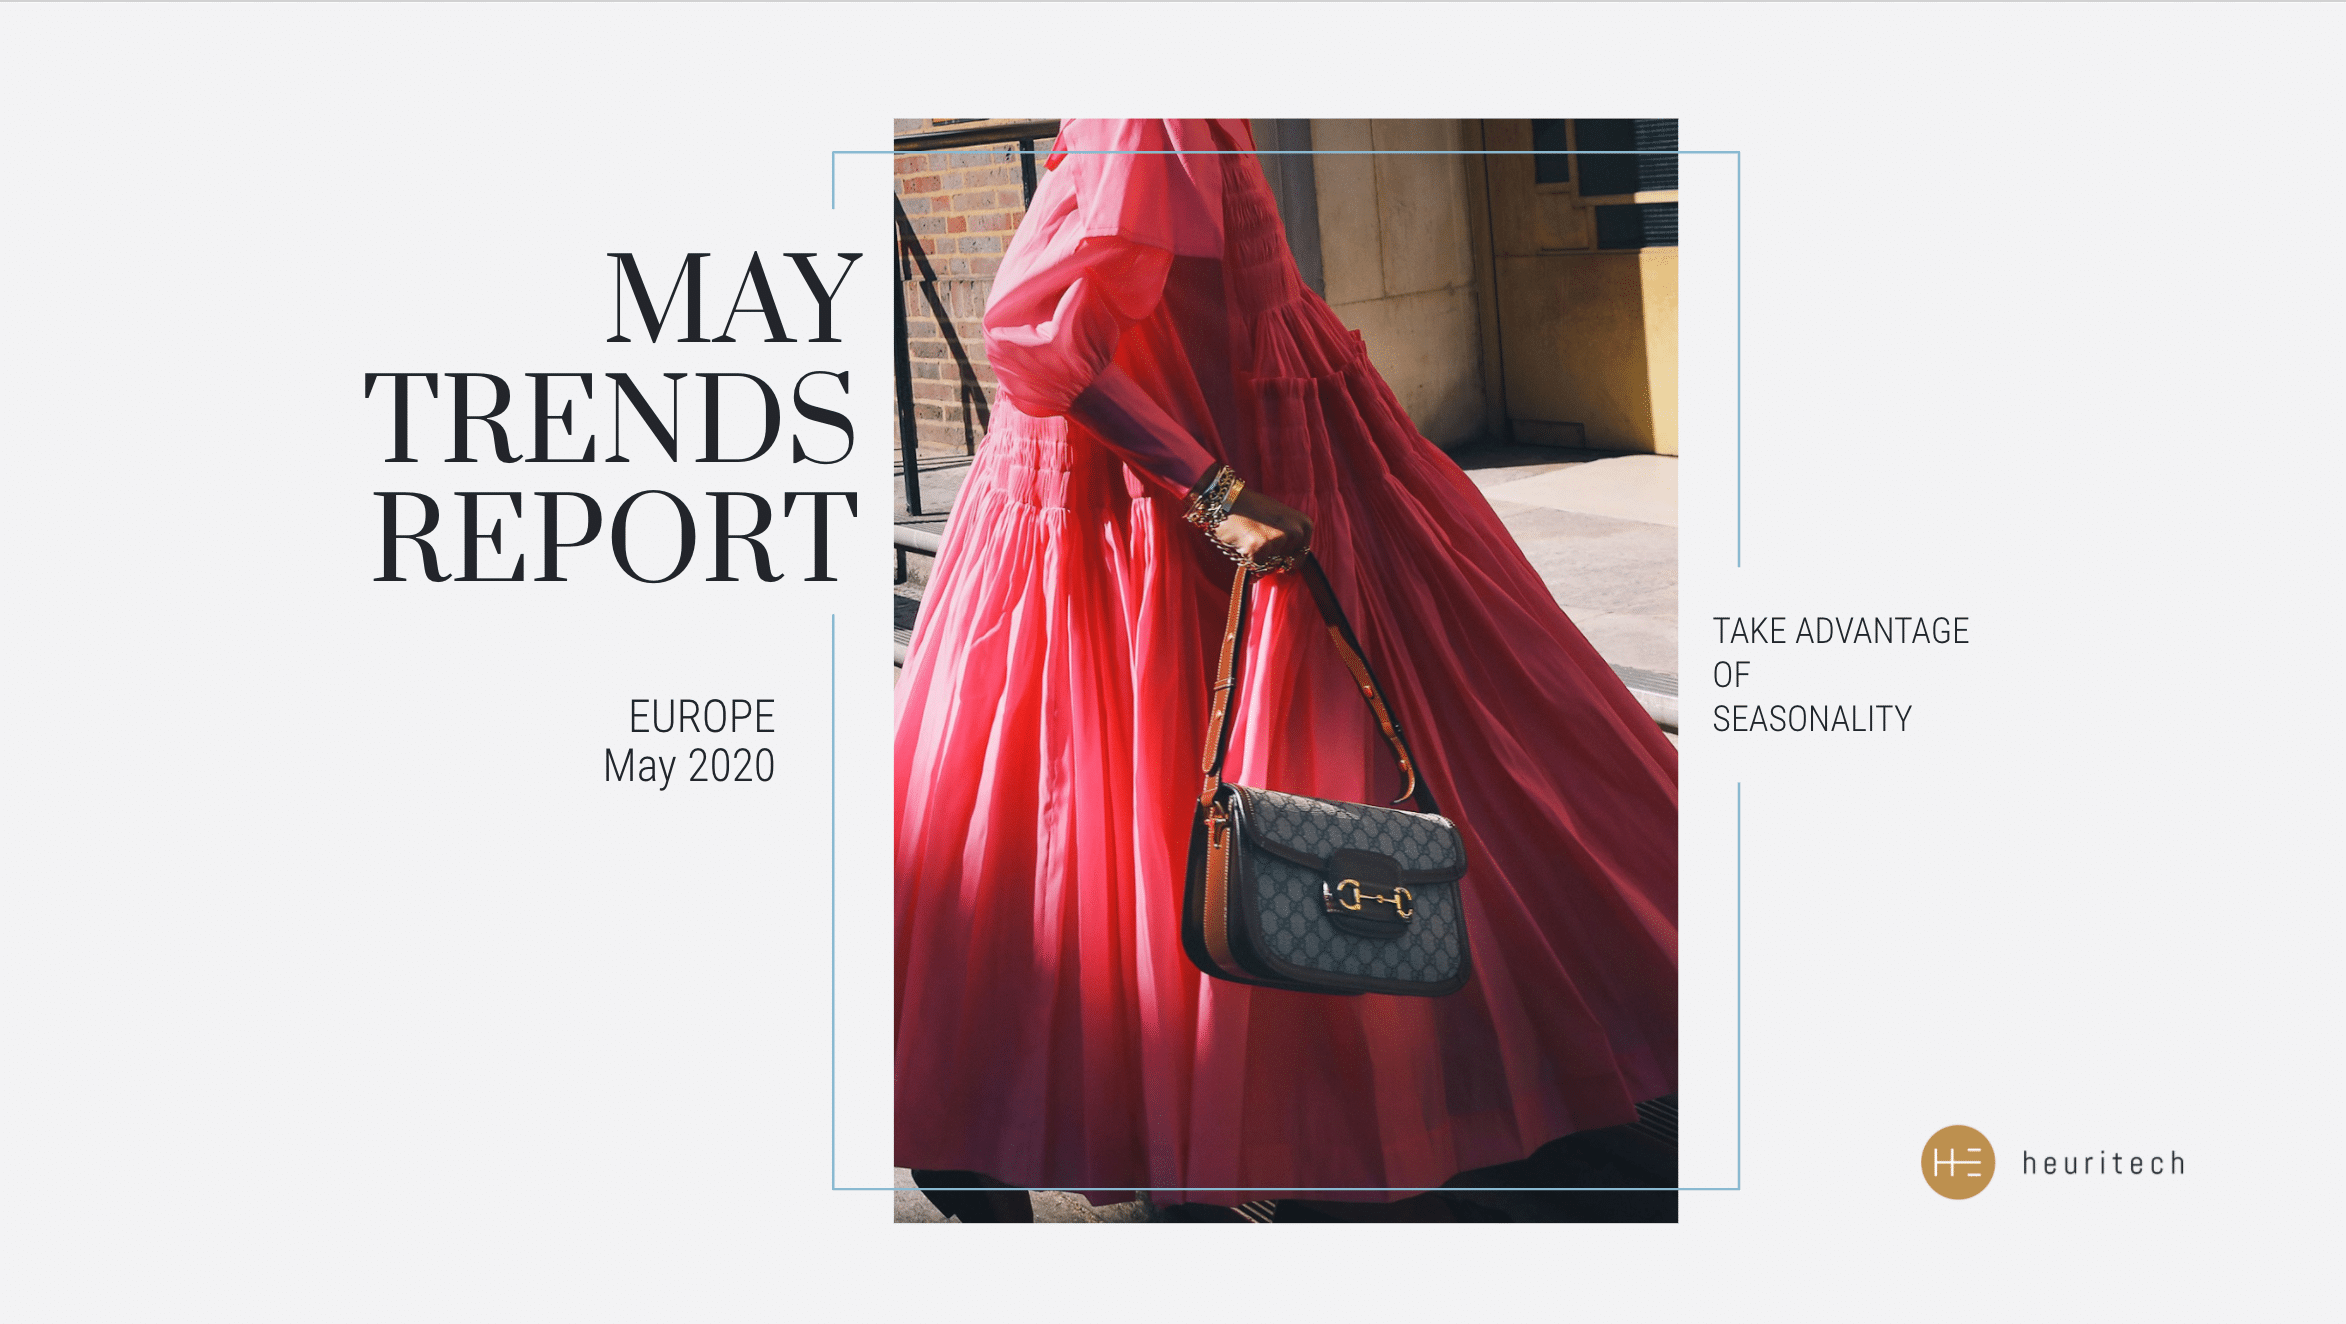 may trends report